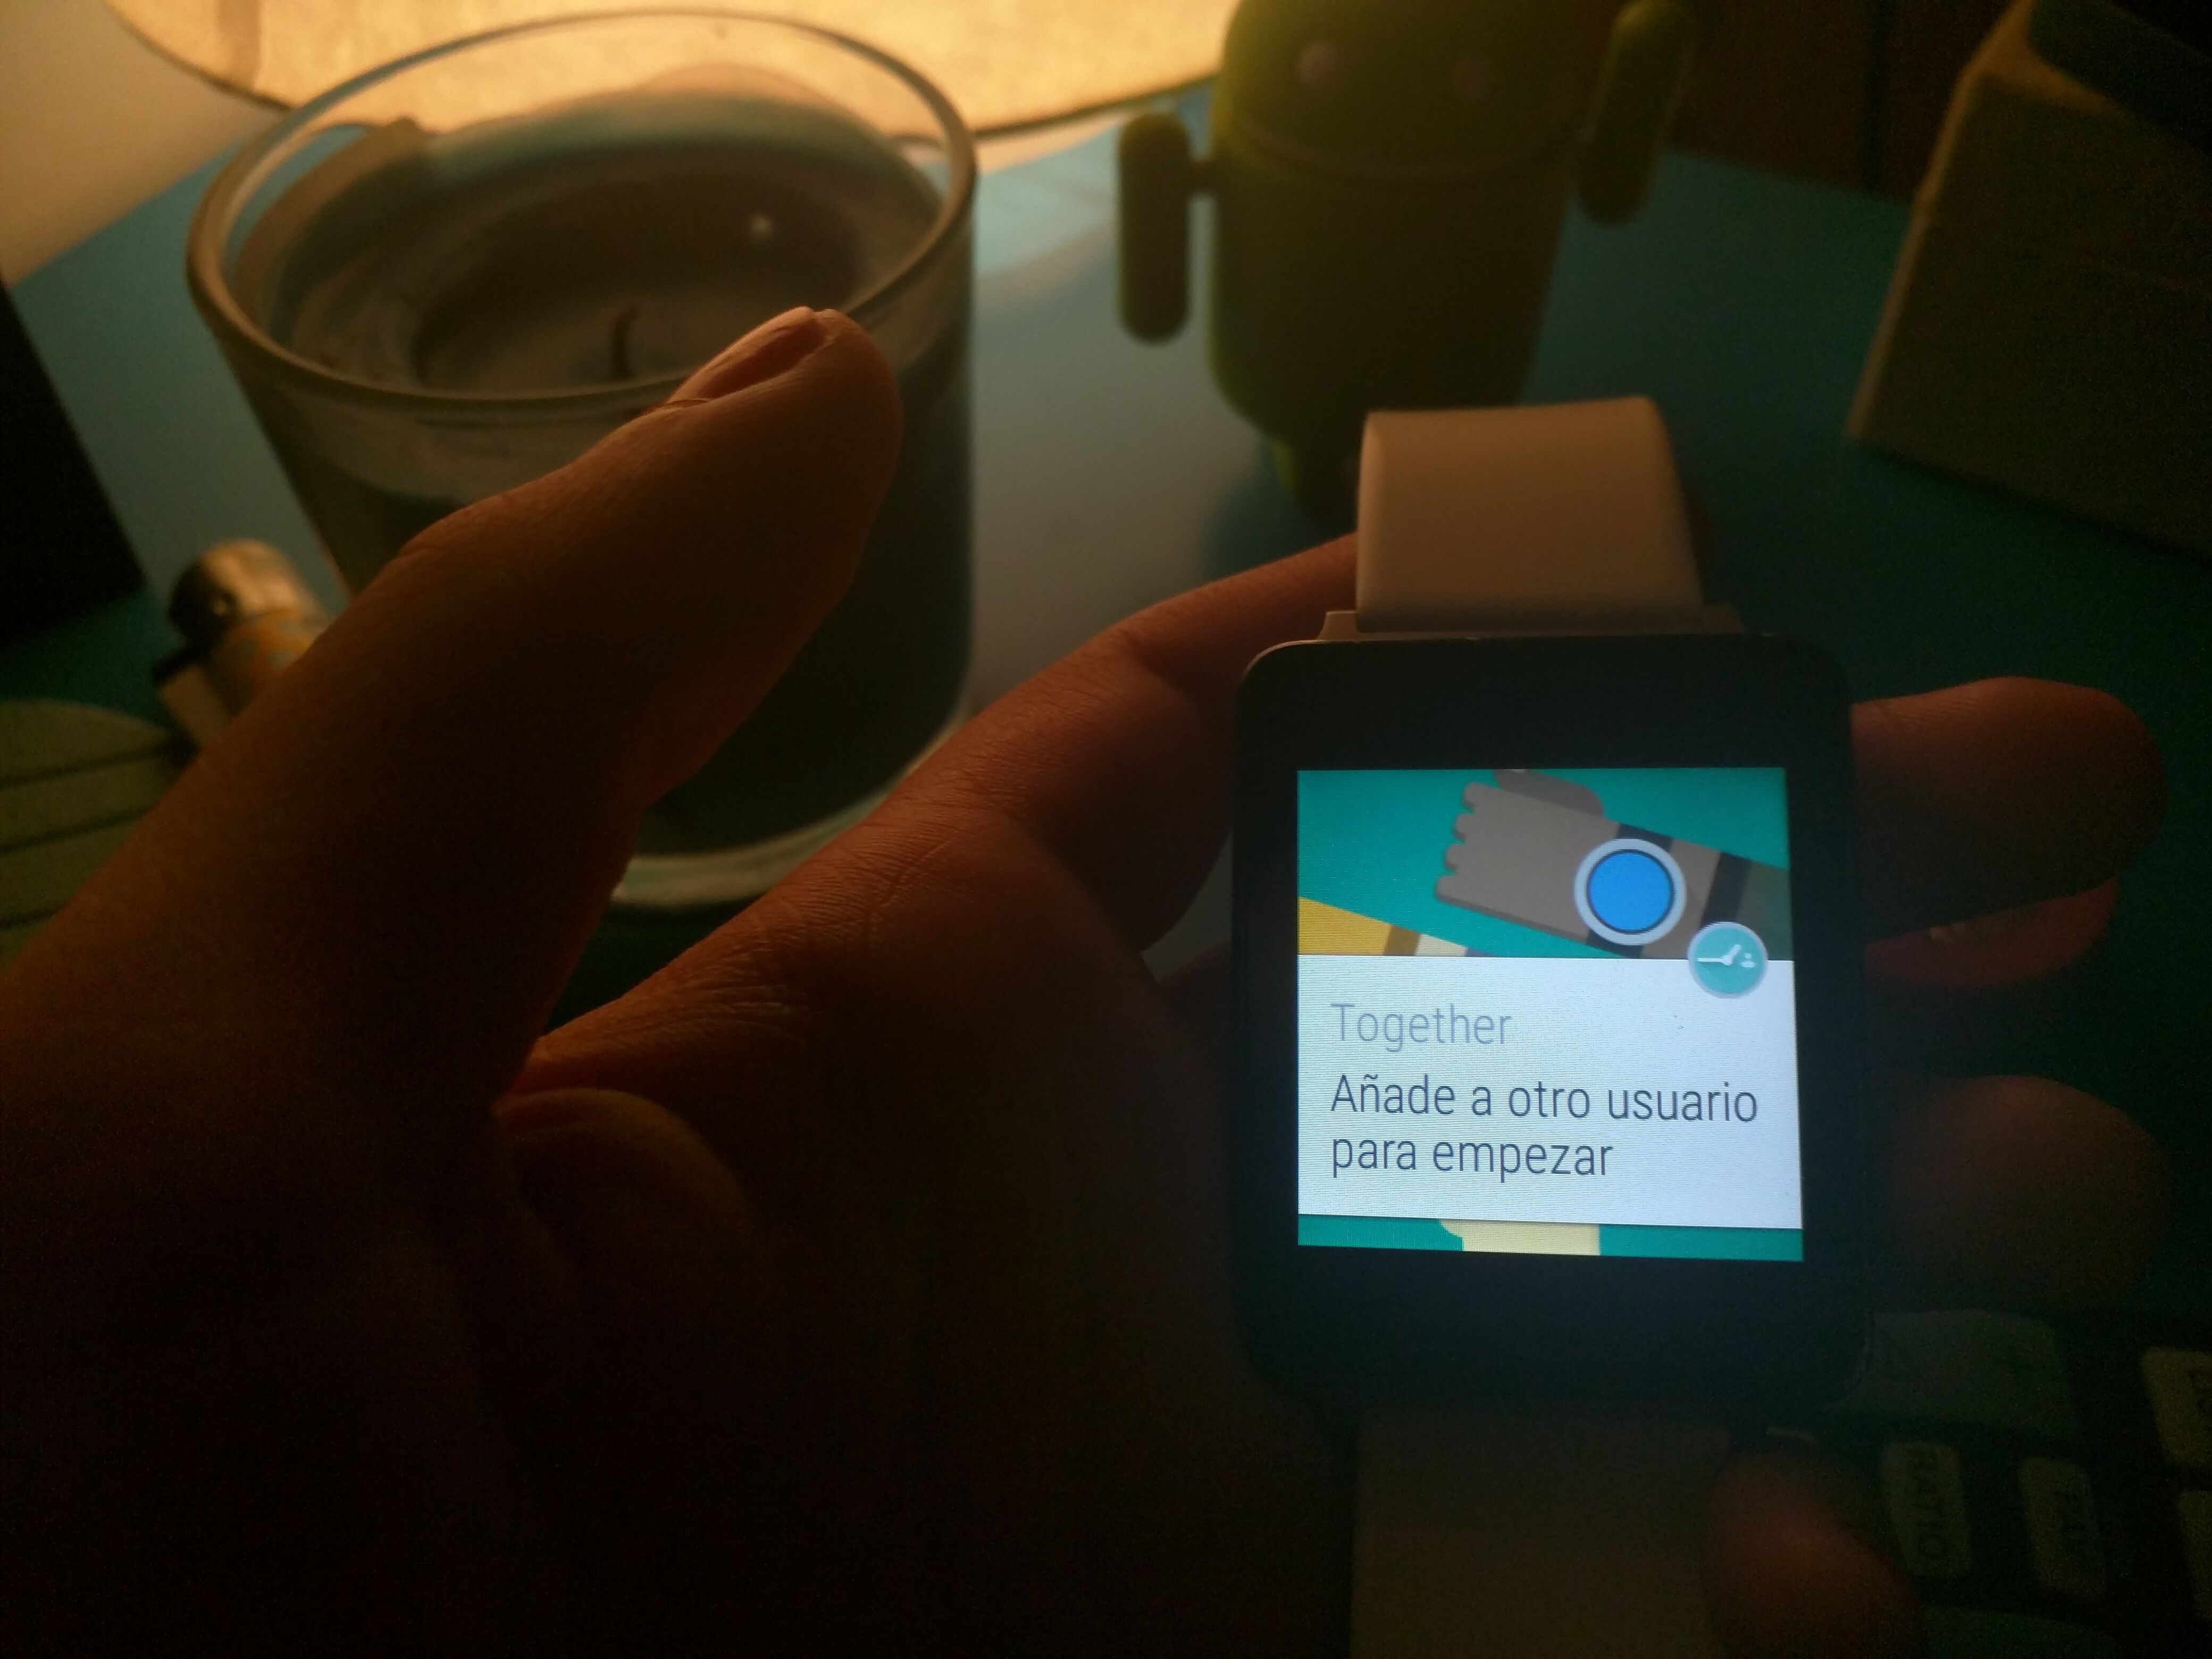 together android wear 1.3